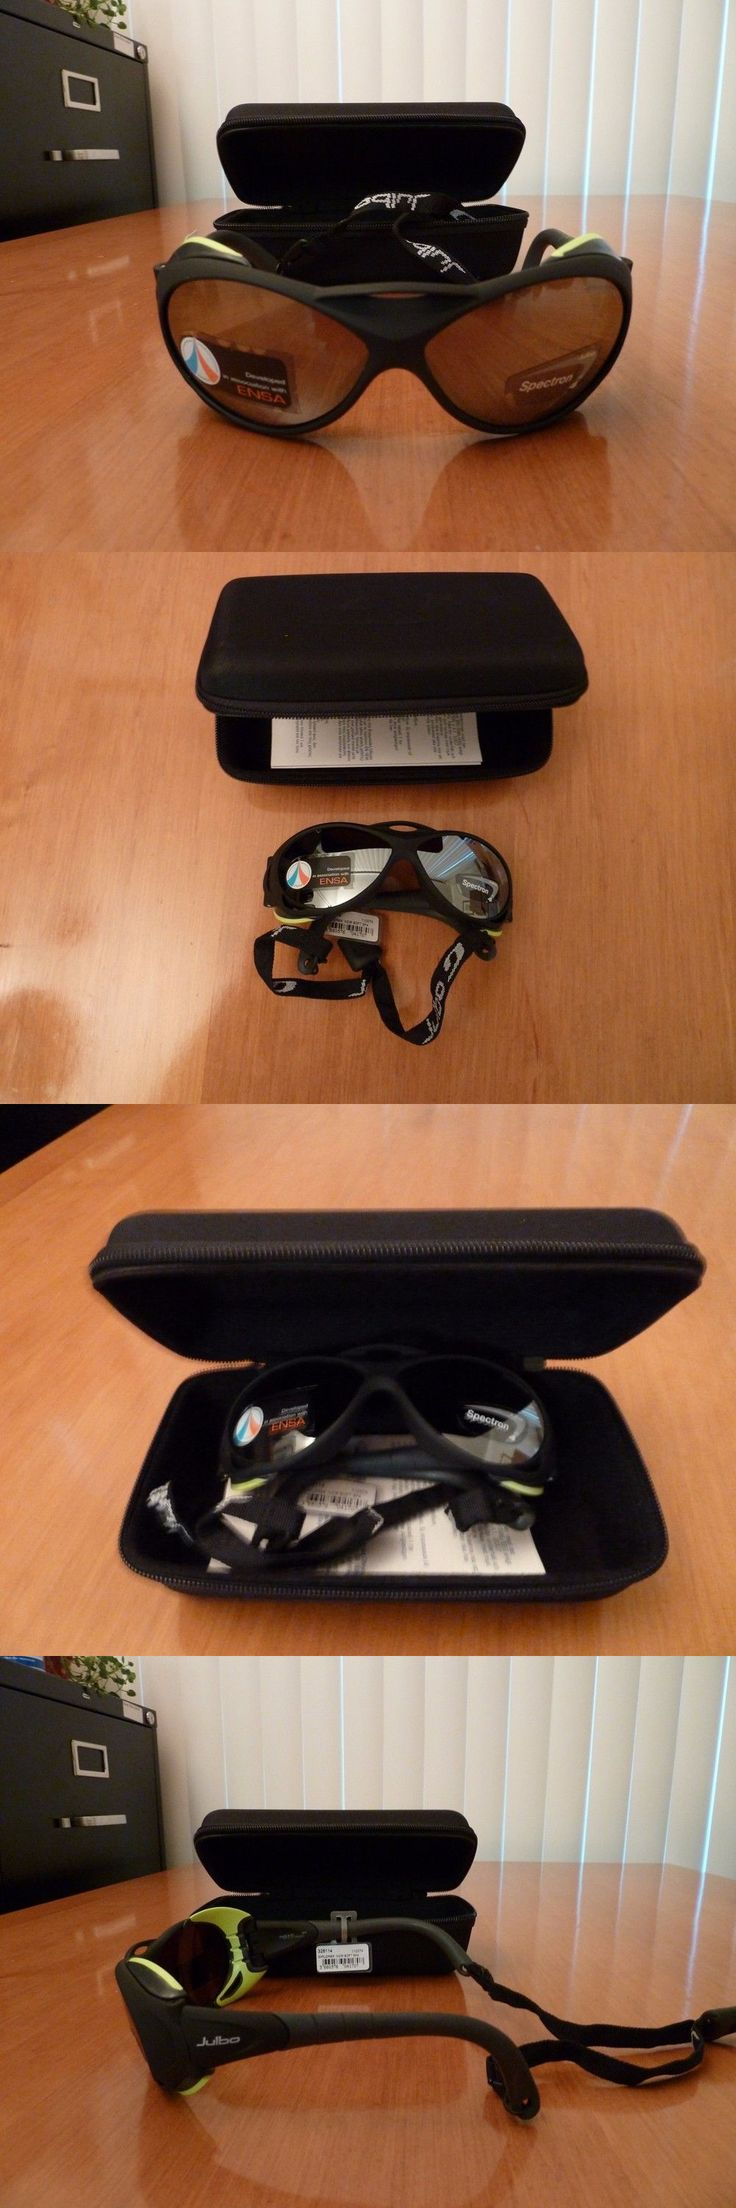 Sunglasses and Goggles 56185: Julbo Explorer Noir Soft Sp4 -> BUY IT NOW ONLY: $65 on eBay!